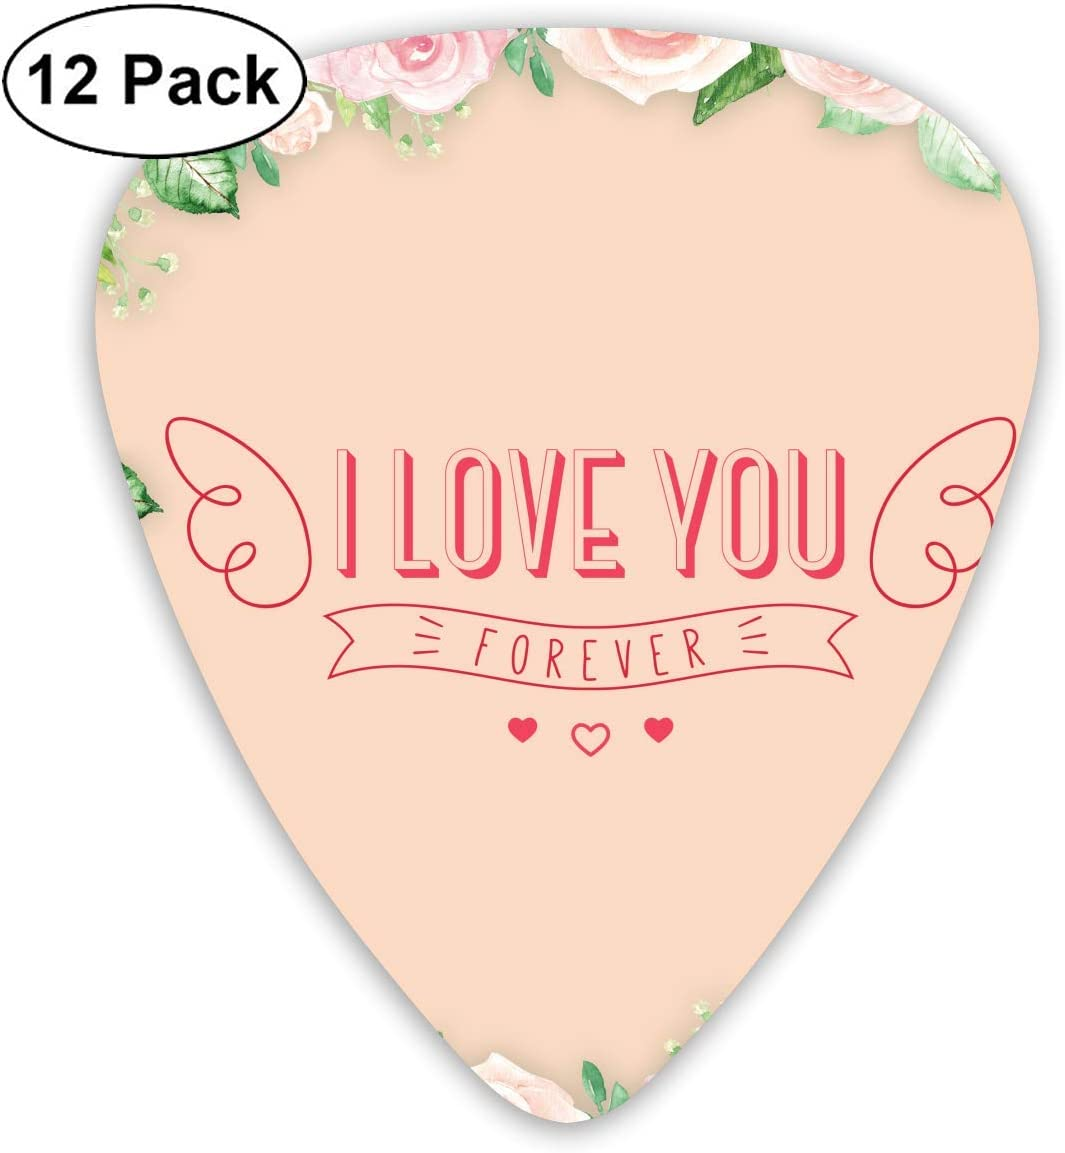 12 Pack Guitar Picks I Love You Forever-rose. Think, Medium And Heavy,Unique Guitar Gift For Bass, Electric & Acoustic Guitars: Amazon.es: Instrumentos musicales